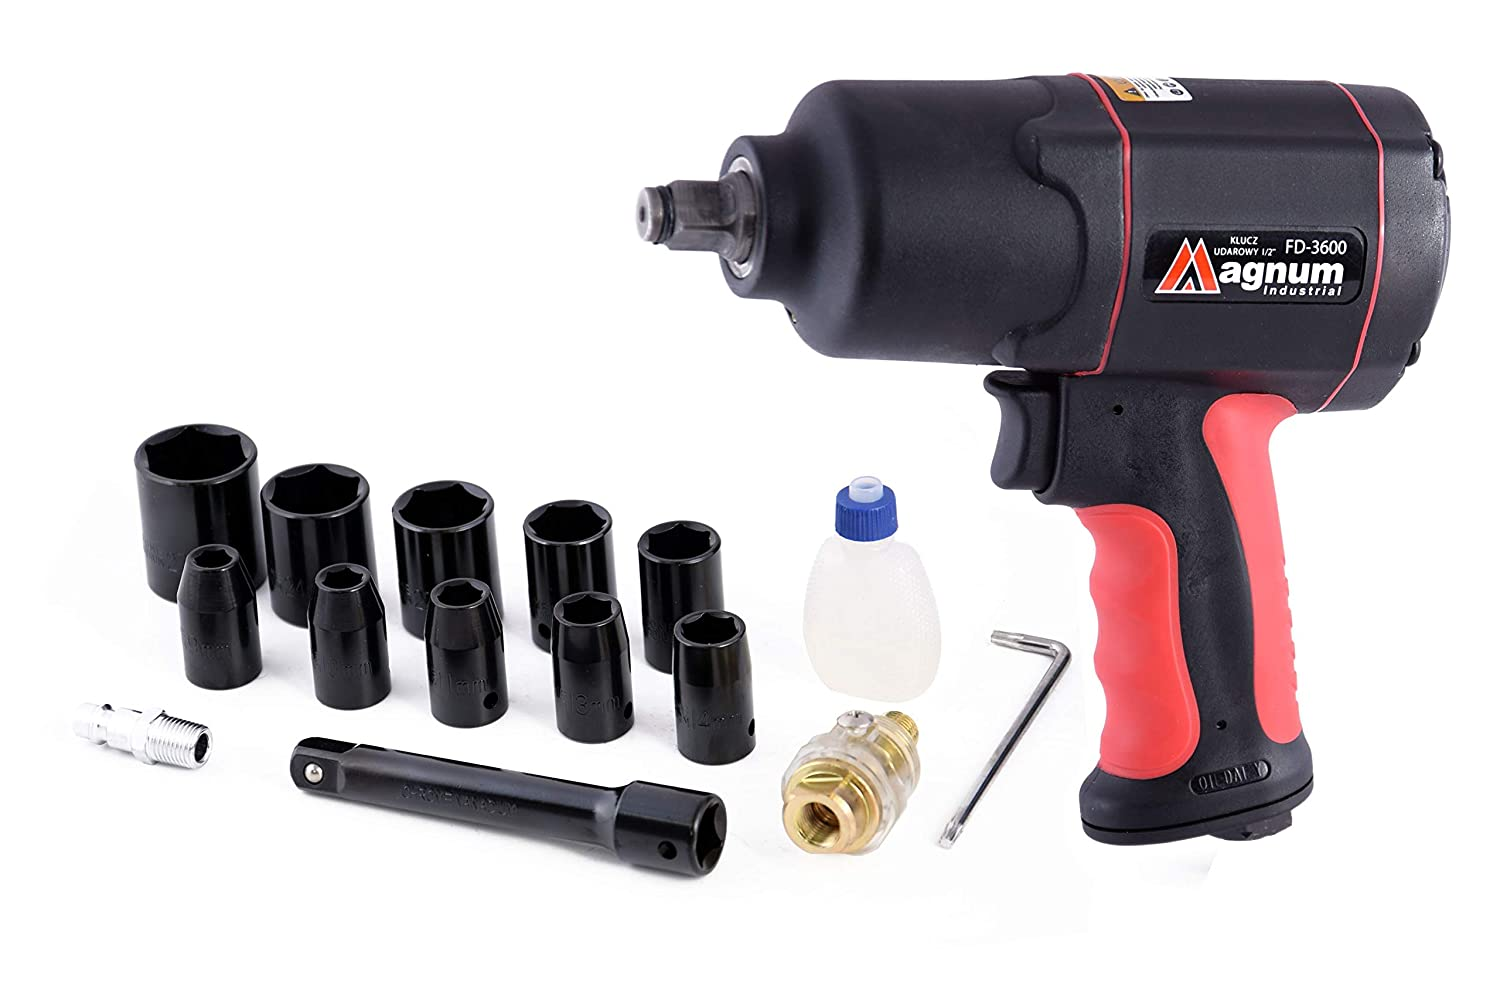 Strong 1200Nm Max Air Impact Wrench 885 ft-lb 1/2' SQ Drive Wheel + Case Nuts MAGNUM